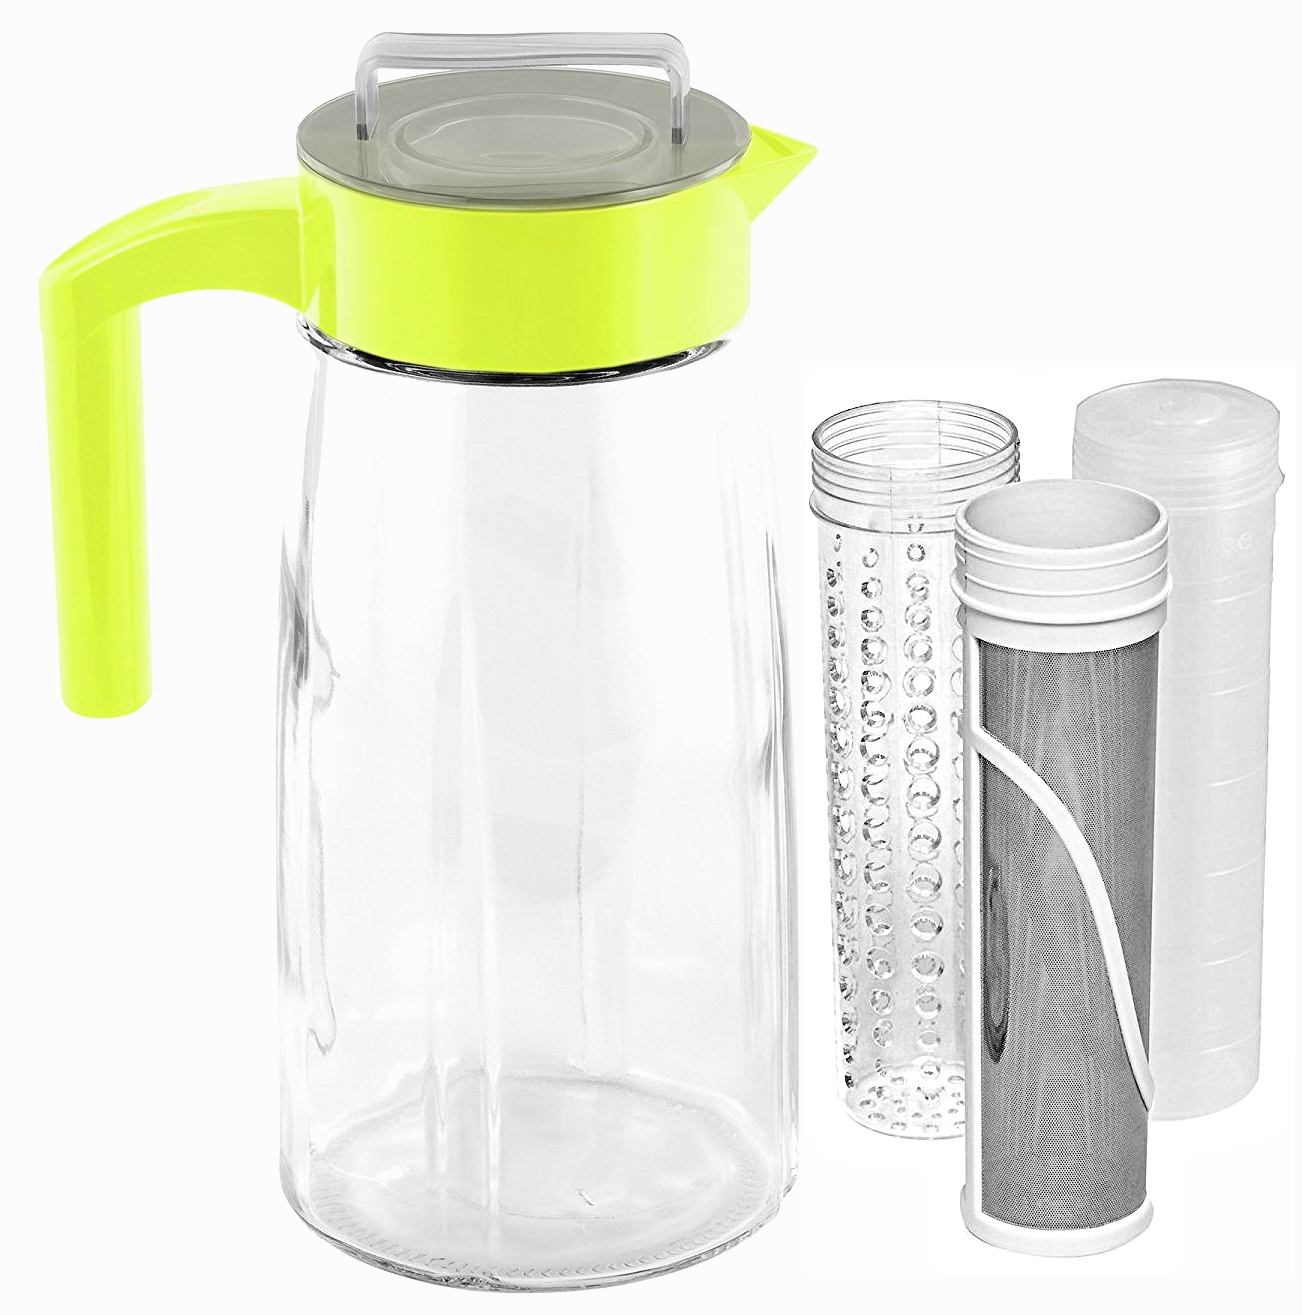 Cooking Upgrades 60oz Cold Brew Coffee Maker and Tea Maker With Ice